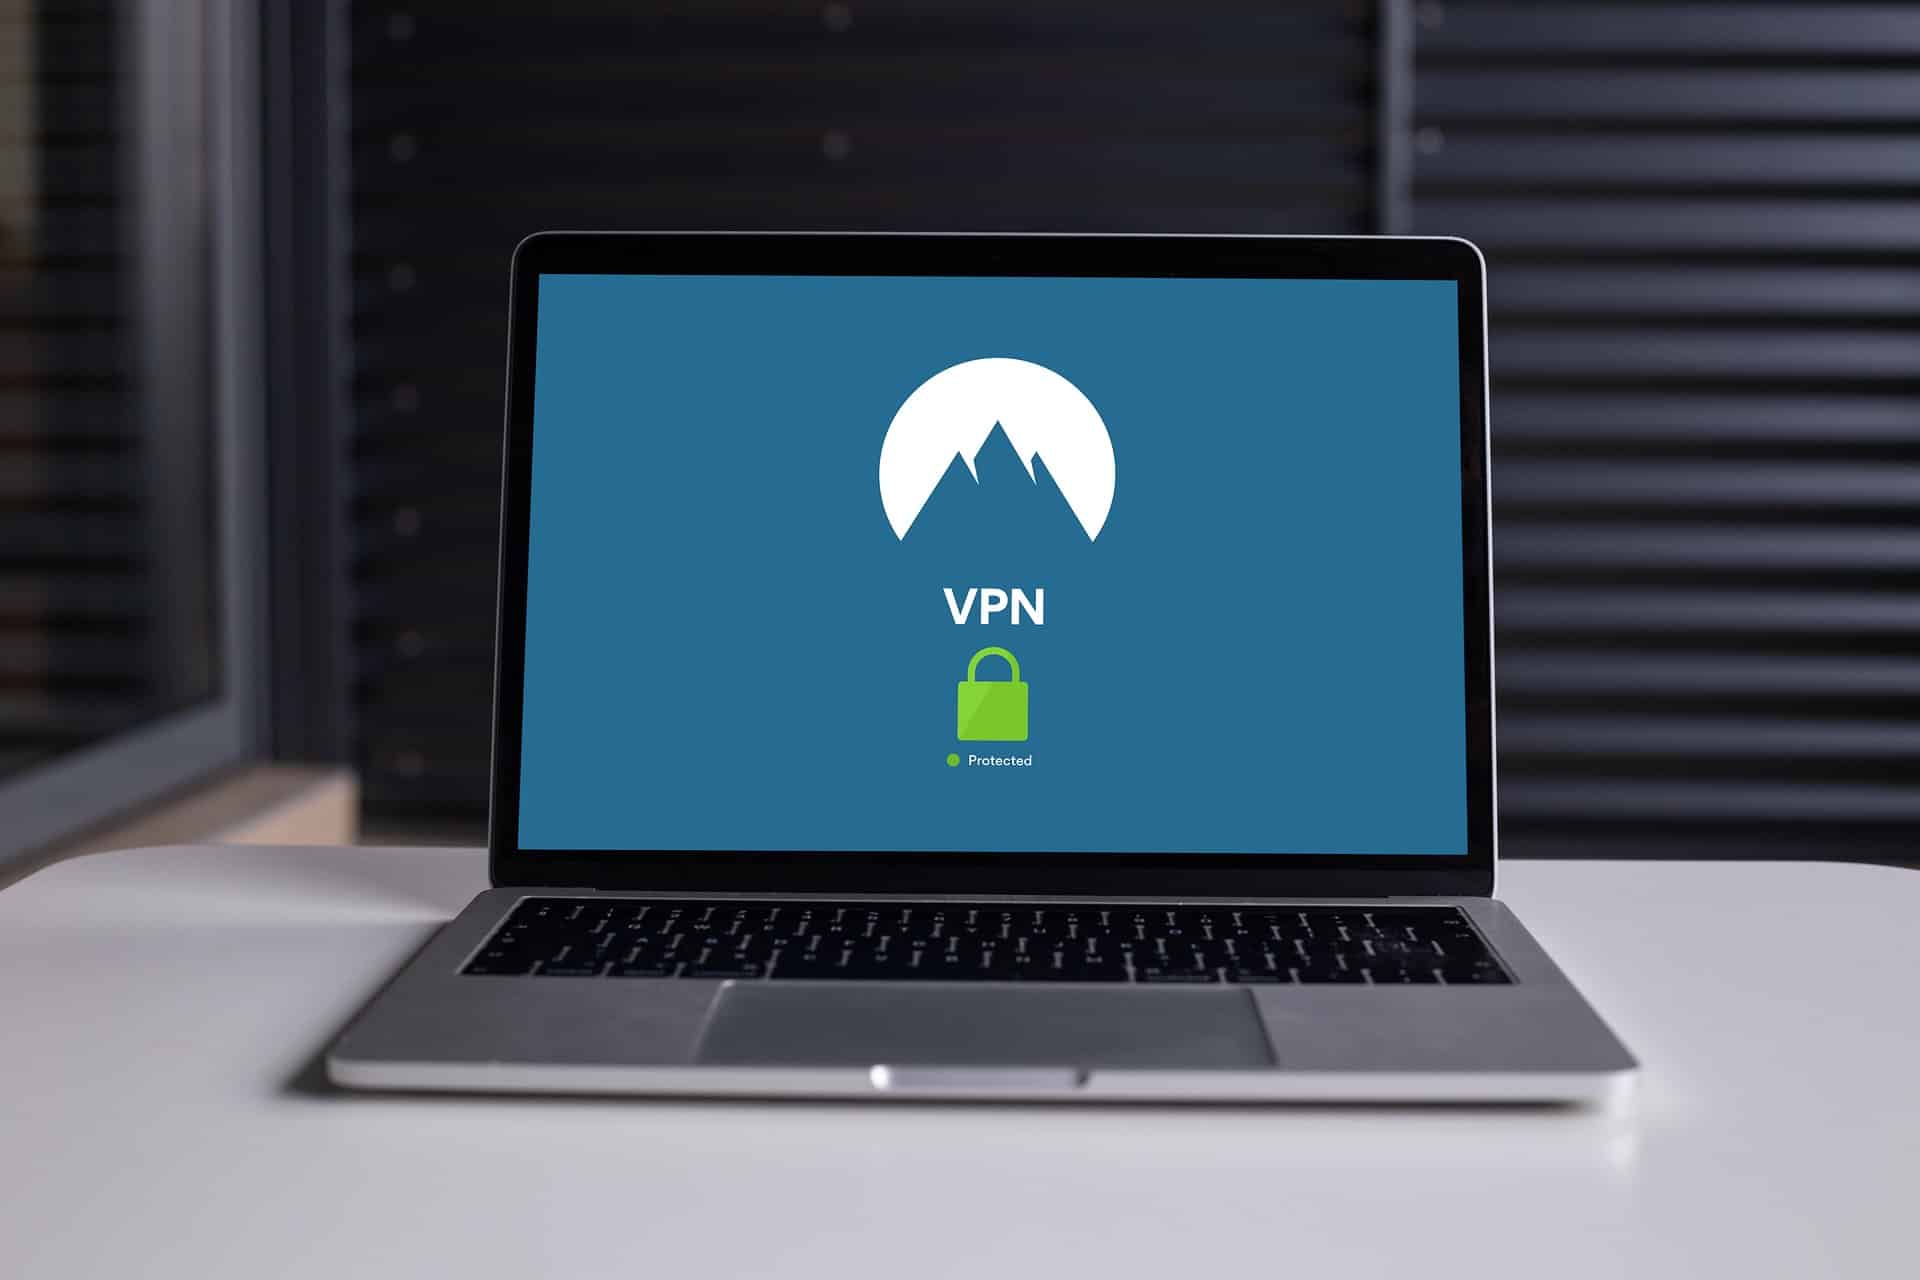 vpn on the Macbook